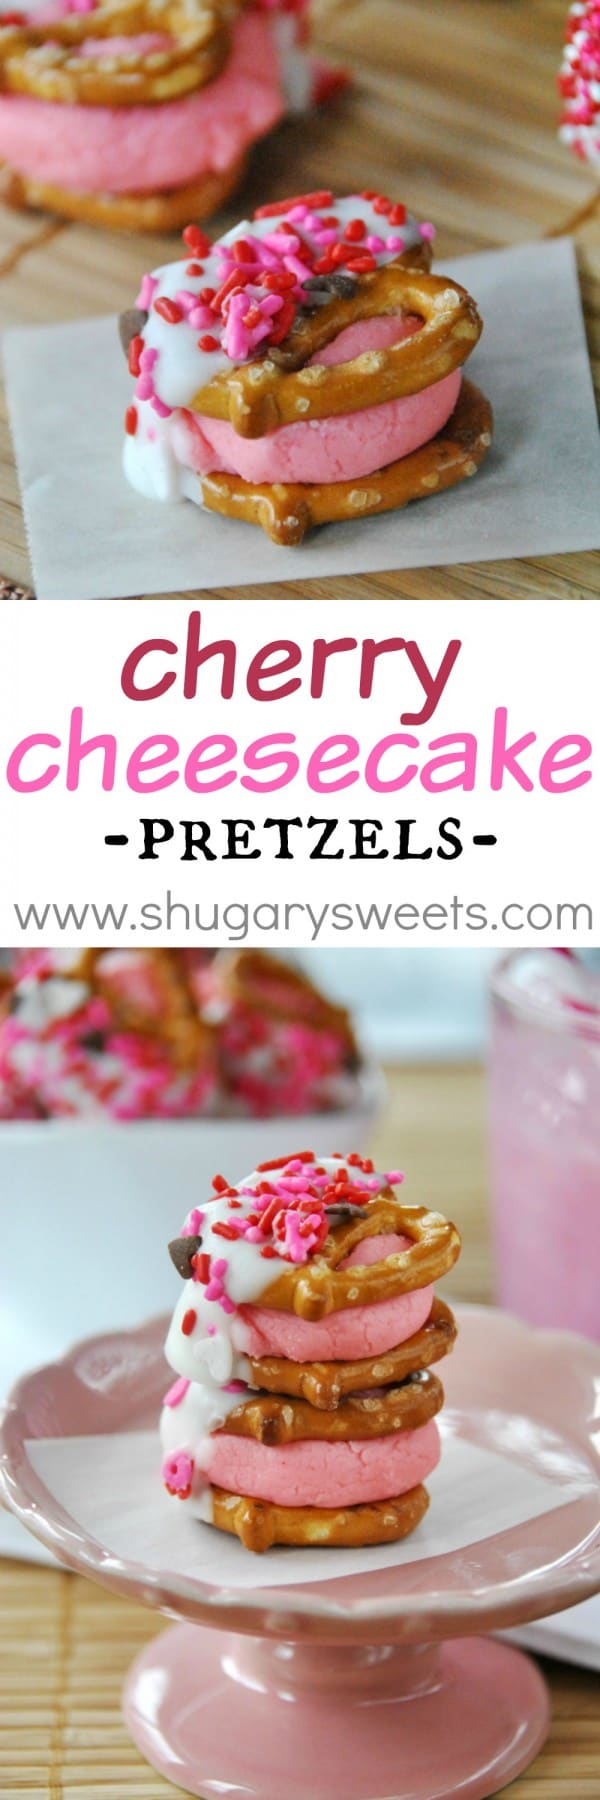 Cherry Cheesecake Pretzel Bites: delicious, easy bite sized treats! The perfect recipe for Valentine's Day or a girls birthday party!